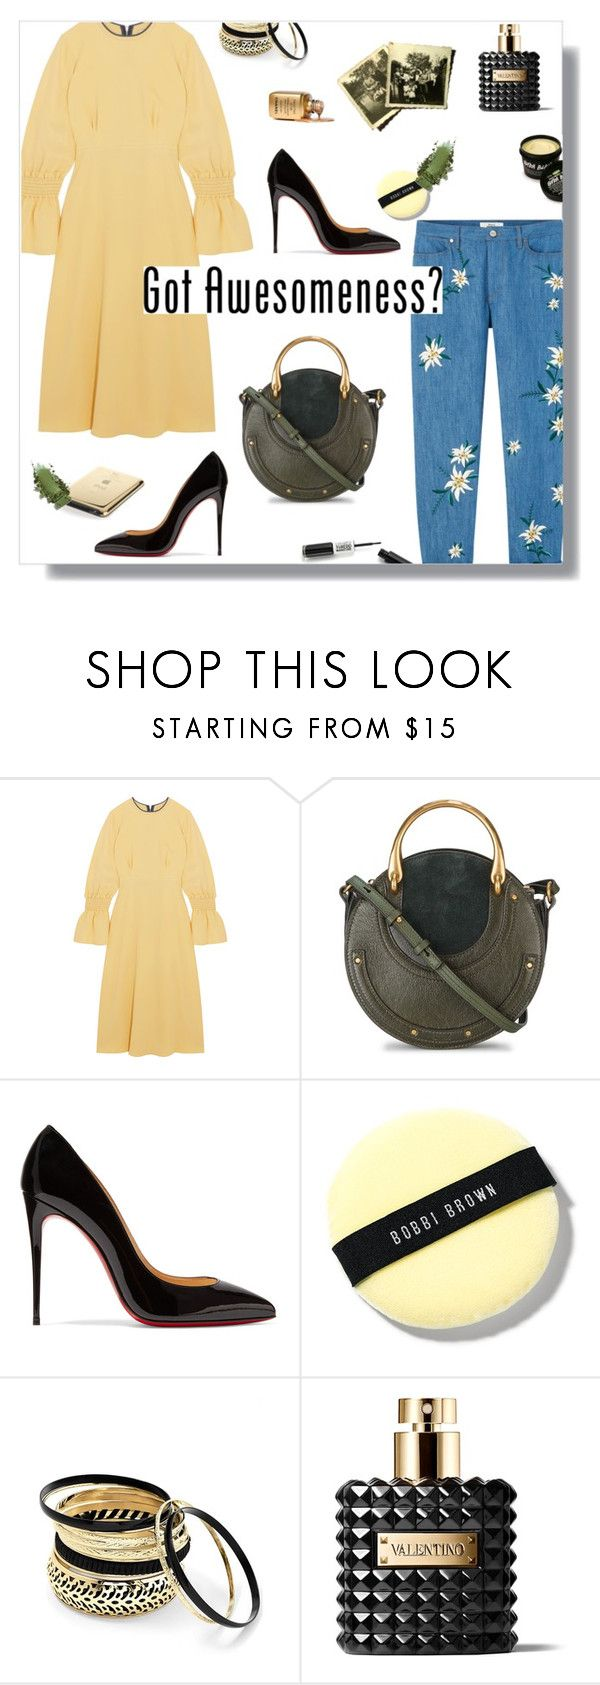 """Got it."" by peony-and-python ❤ liked on Polyvore featuring Roksanda, Chloé, Christian Louboutin, Bobbi Brown Cosmetics, Venus, Valentino, awesome, denim, Heels and colorful"